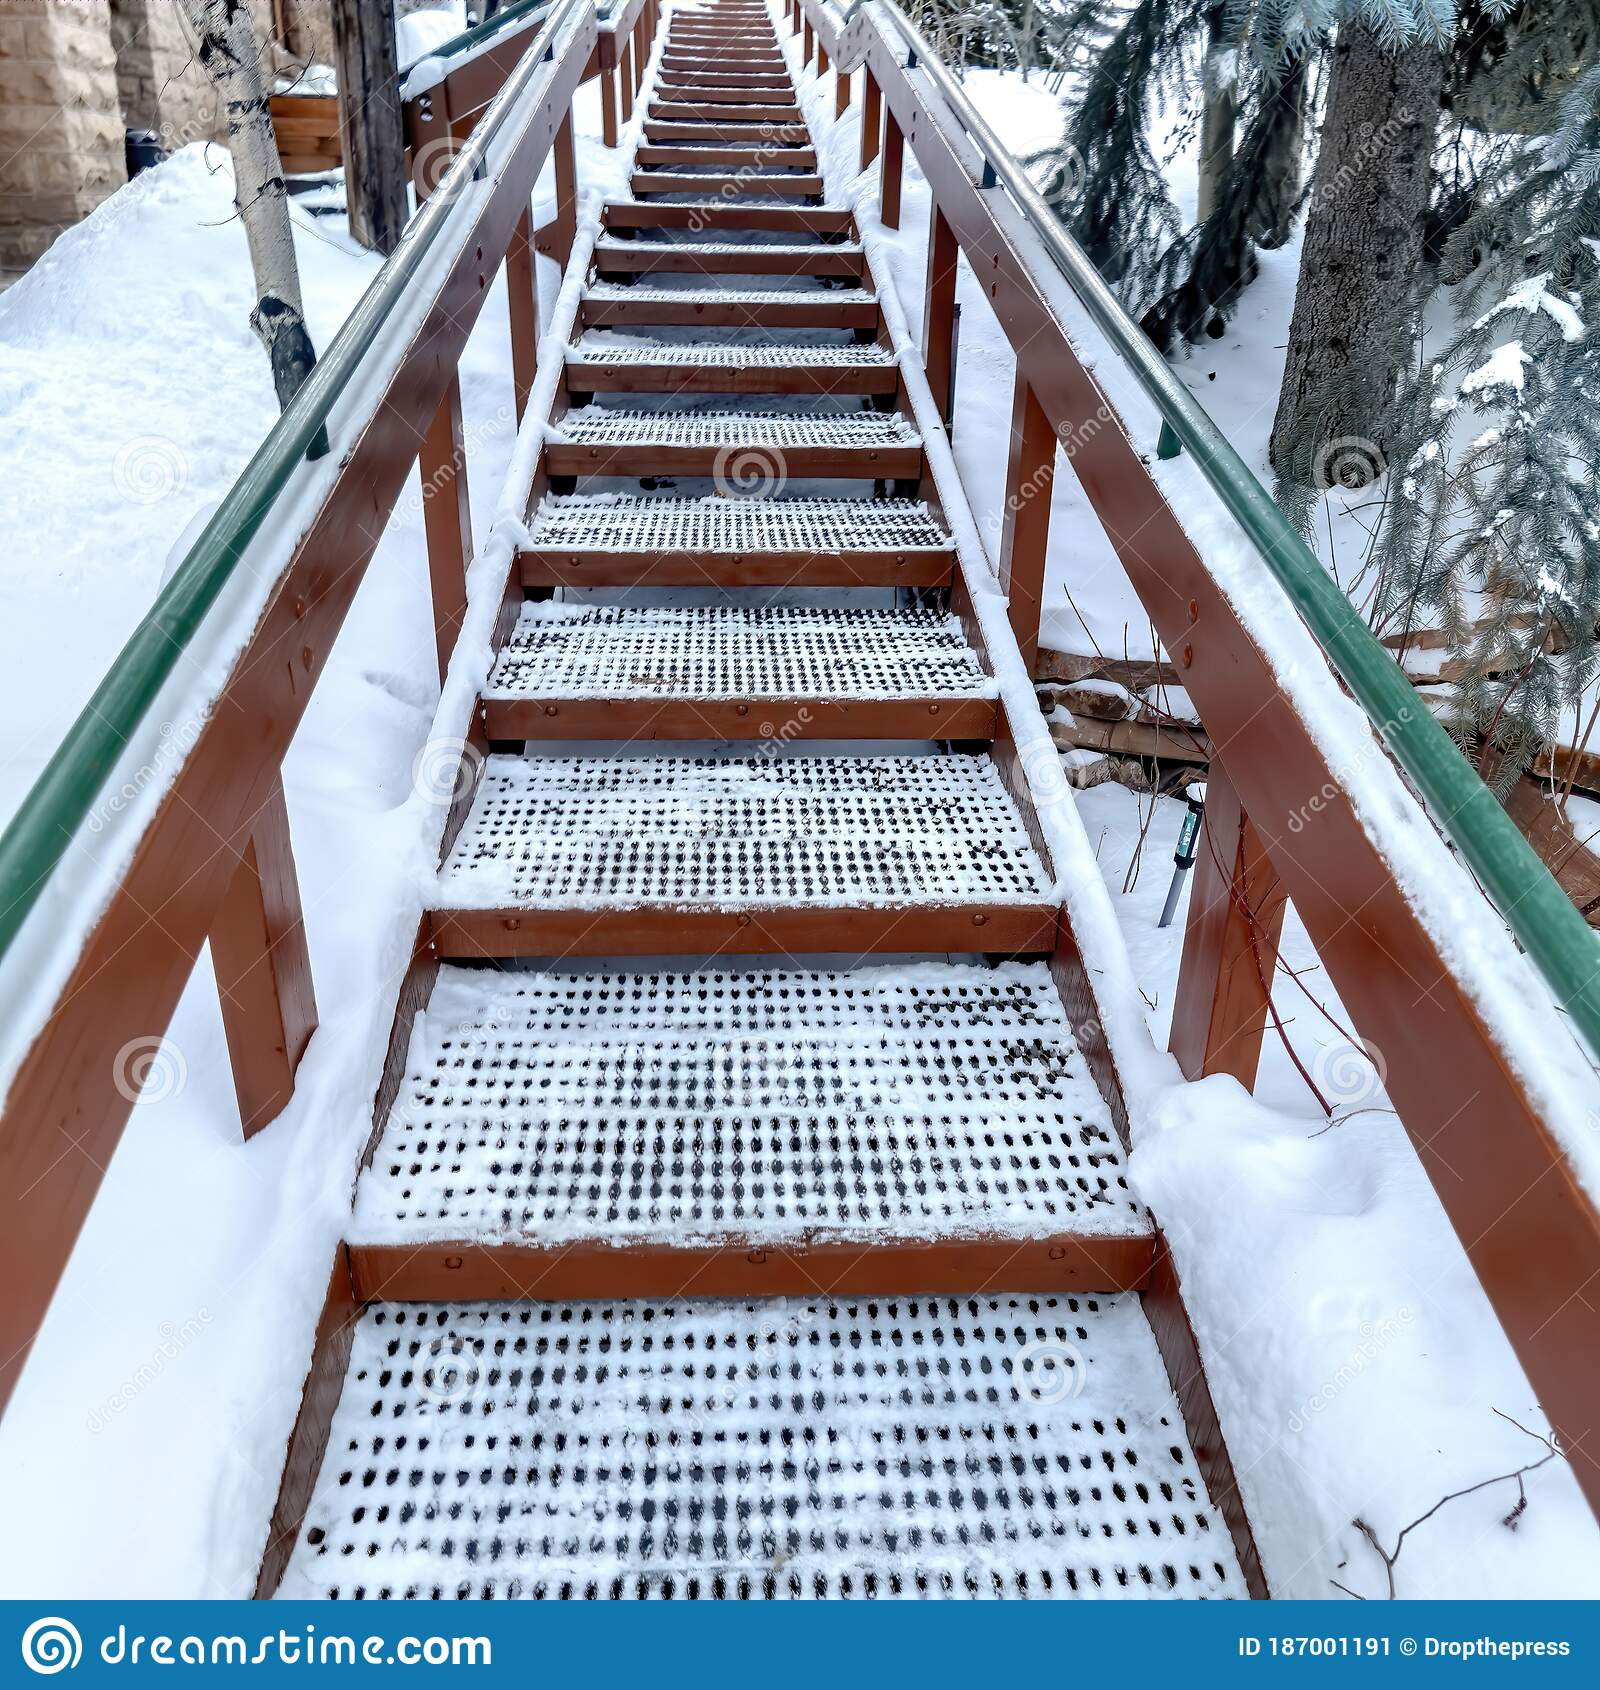 Image of: Square Crop Focus On Stairs With Grate Treads And Metal Handrails Against Snow Covered Hill Stock Image Image Of Cold Snowy 187001191